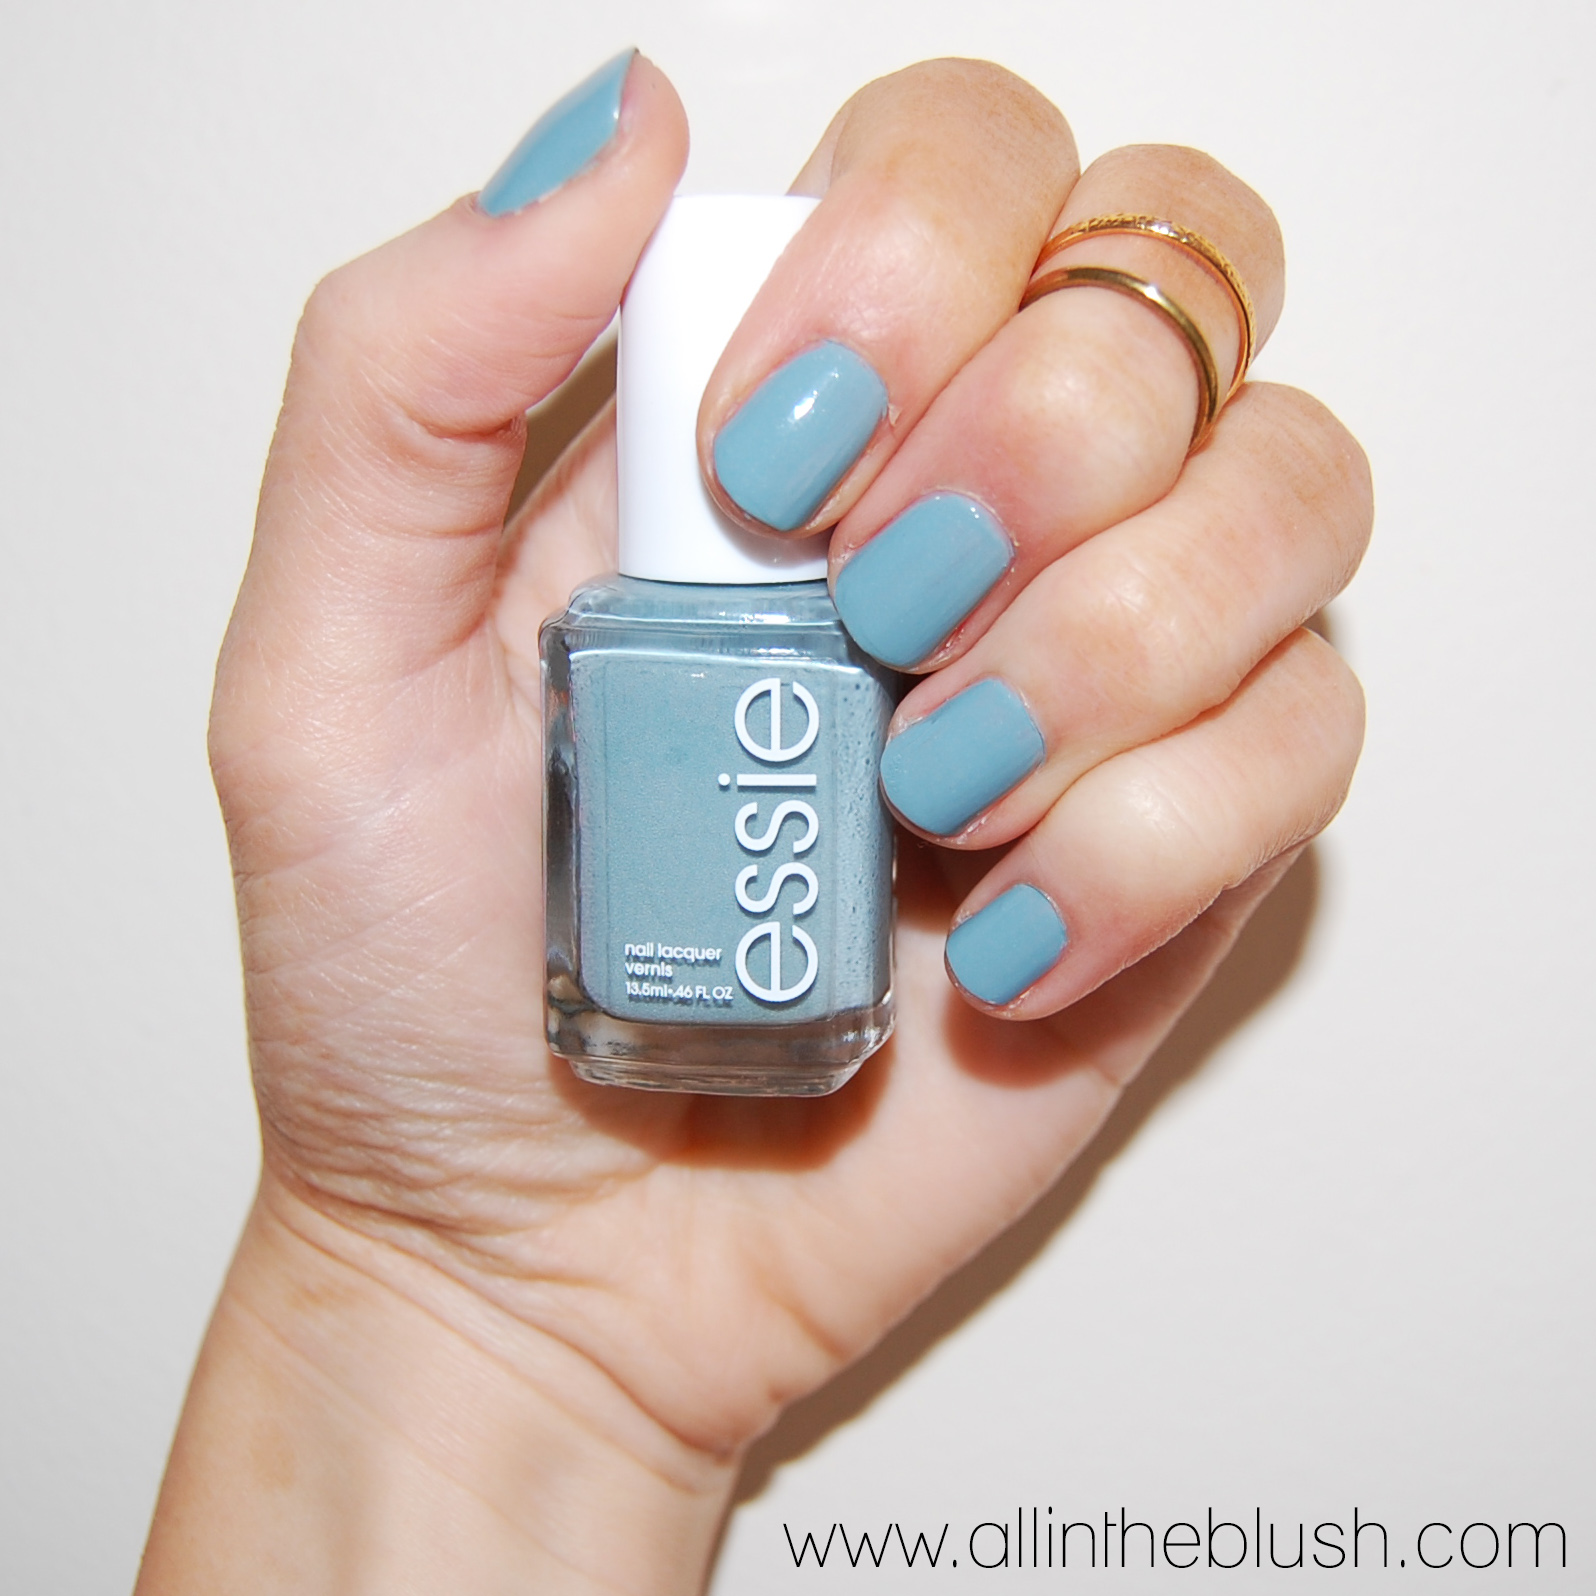 Discussion on this topic: Essie's Winter Wonderland: The 2013 Shearling Darling , essies-winter-wonderland-the-2013-shearling-darling/